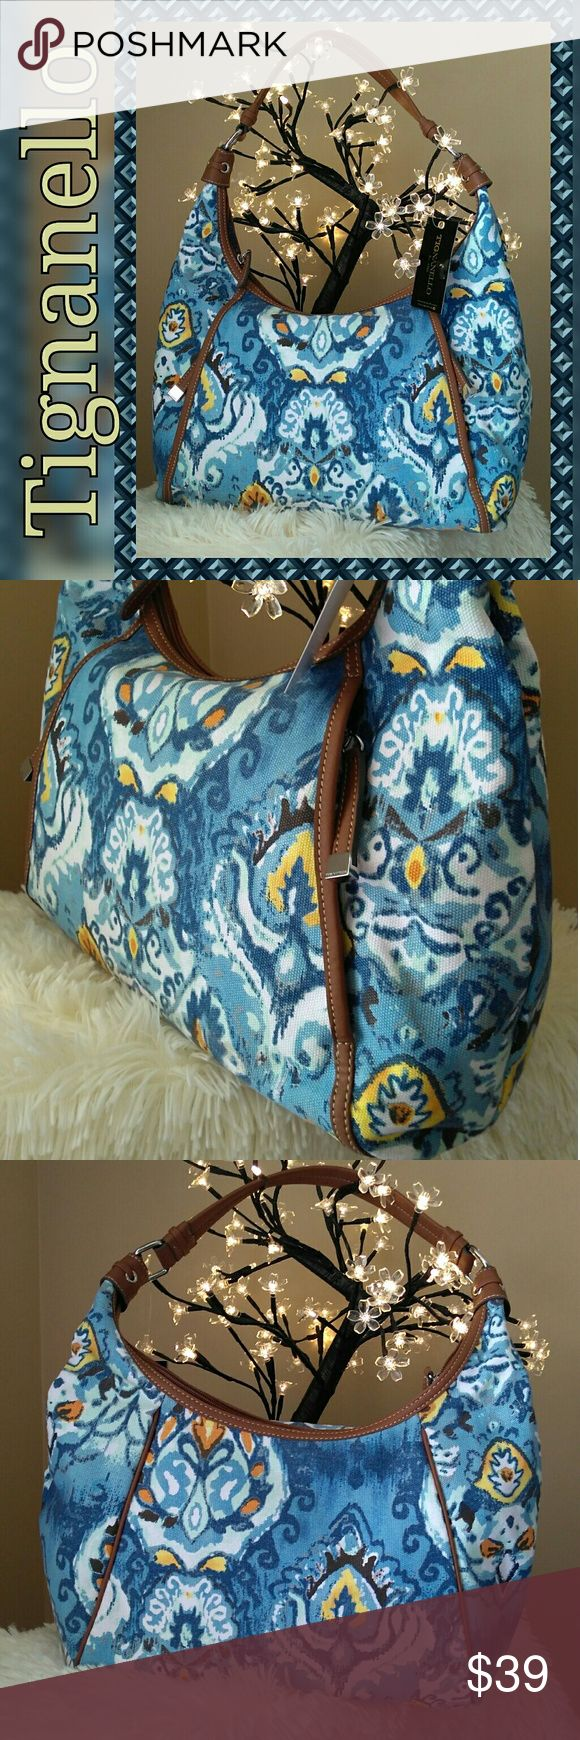 NWT Tignanello Hobo Bag Cute 100% cotton hobo bag is new with tag and original paper inserts. Has lovely vibrant colors of blue, gray, yellow, white, and highlights of mint. Trim is man made material. Interior has 2 open side pockets and 1 side zip. Exterior has 2 hidden vertical zip pockets perfect for keys or cell phone. Dimensions: 1 inches tall x 15 inches wide. Strap is 19 inches. All zips work as new. Thank you for visiting my closet 💖 Tignanello Bags Hobos